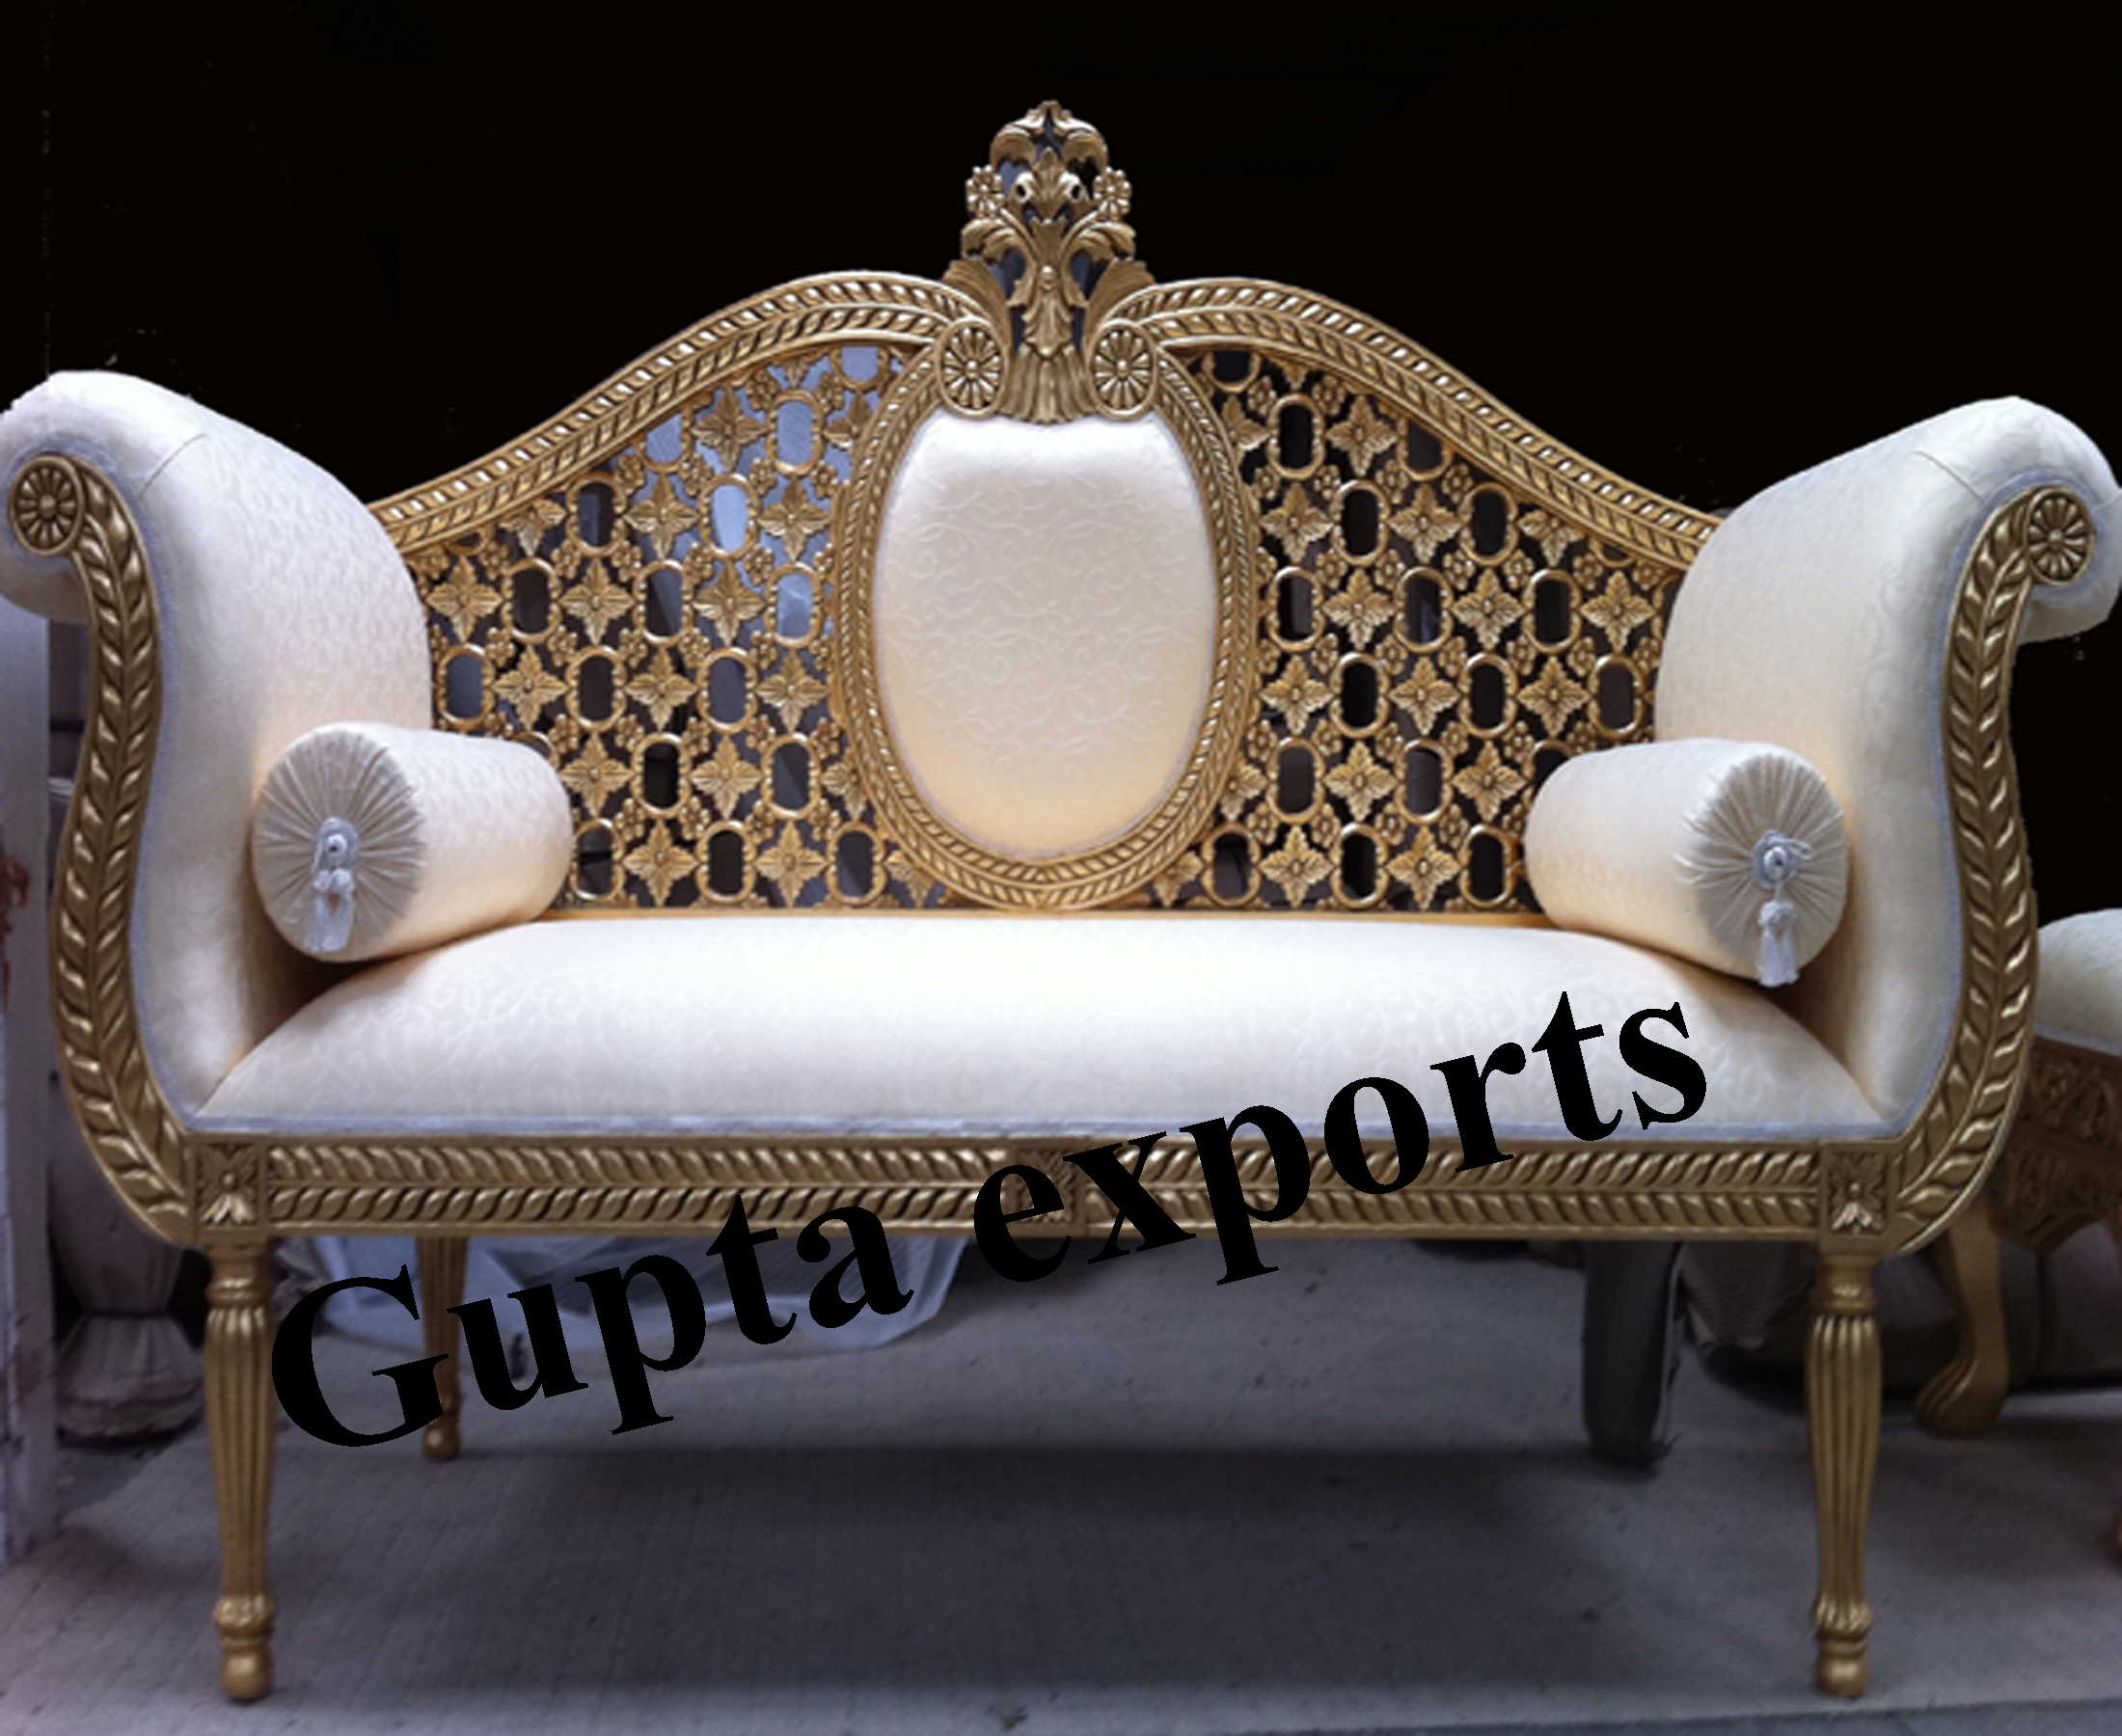 Wedding Loveseat: Wedding Sofa And Chairs In Punjab